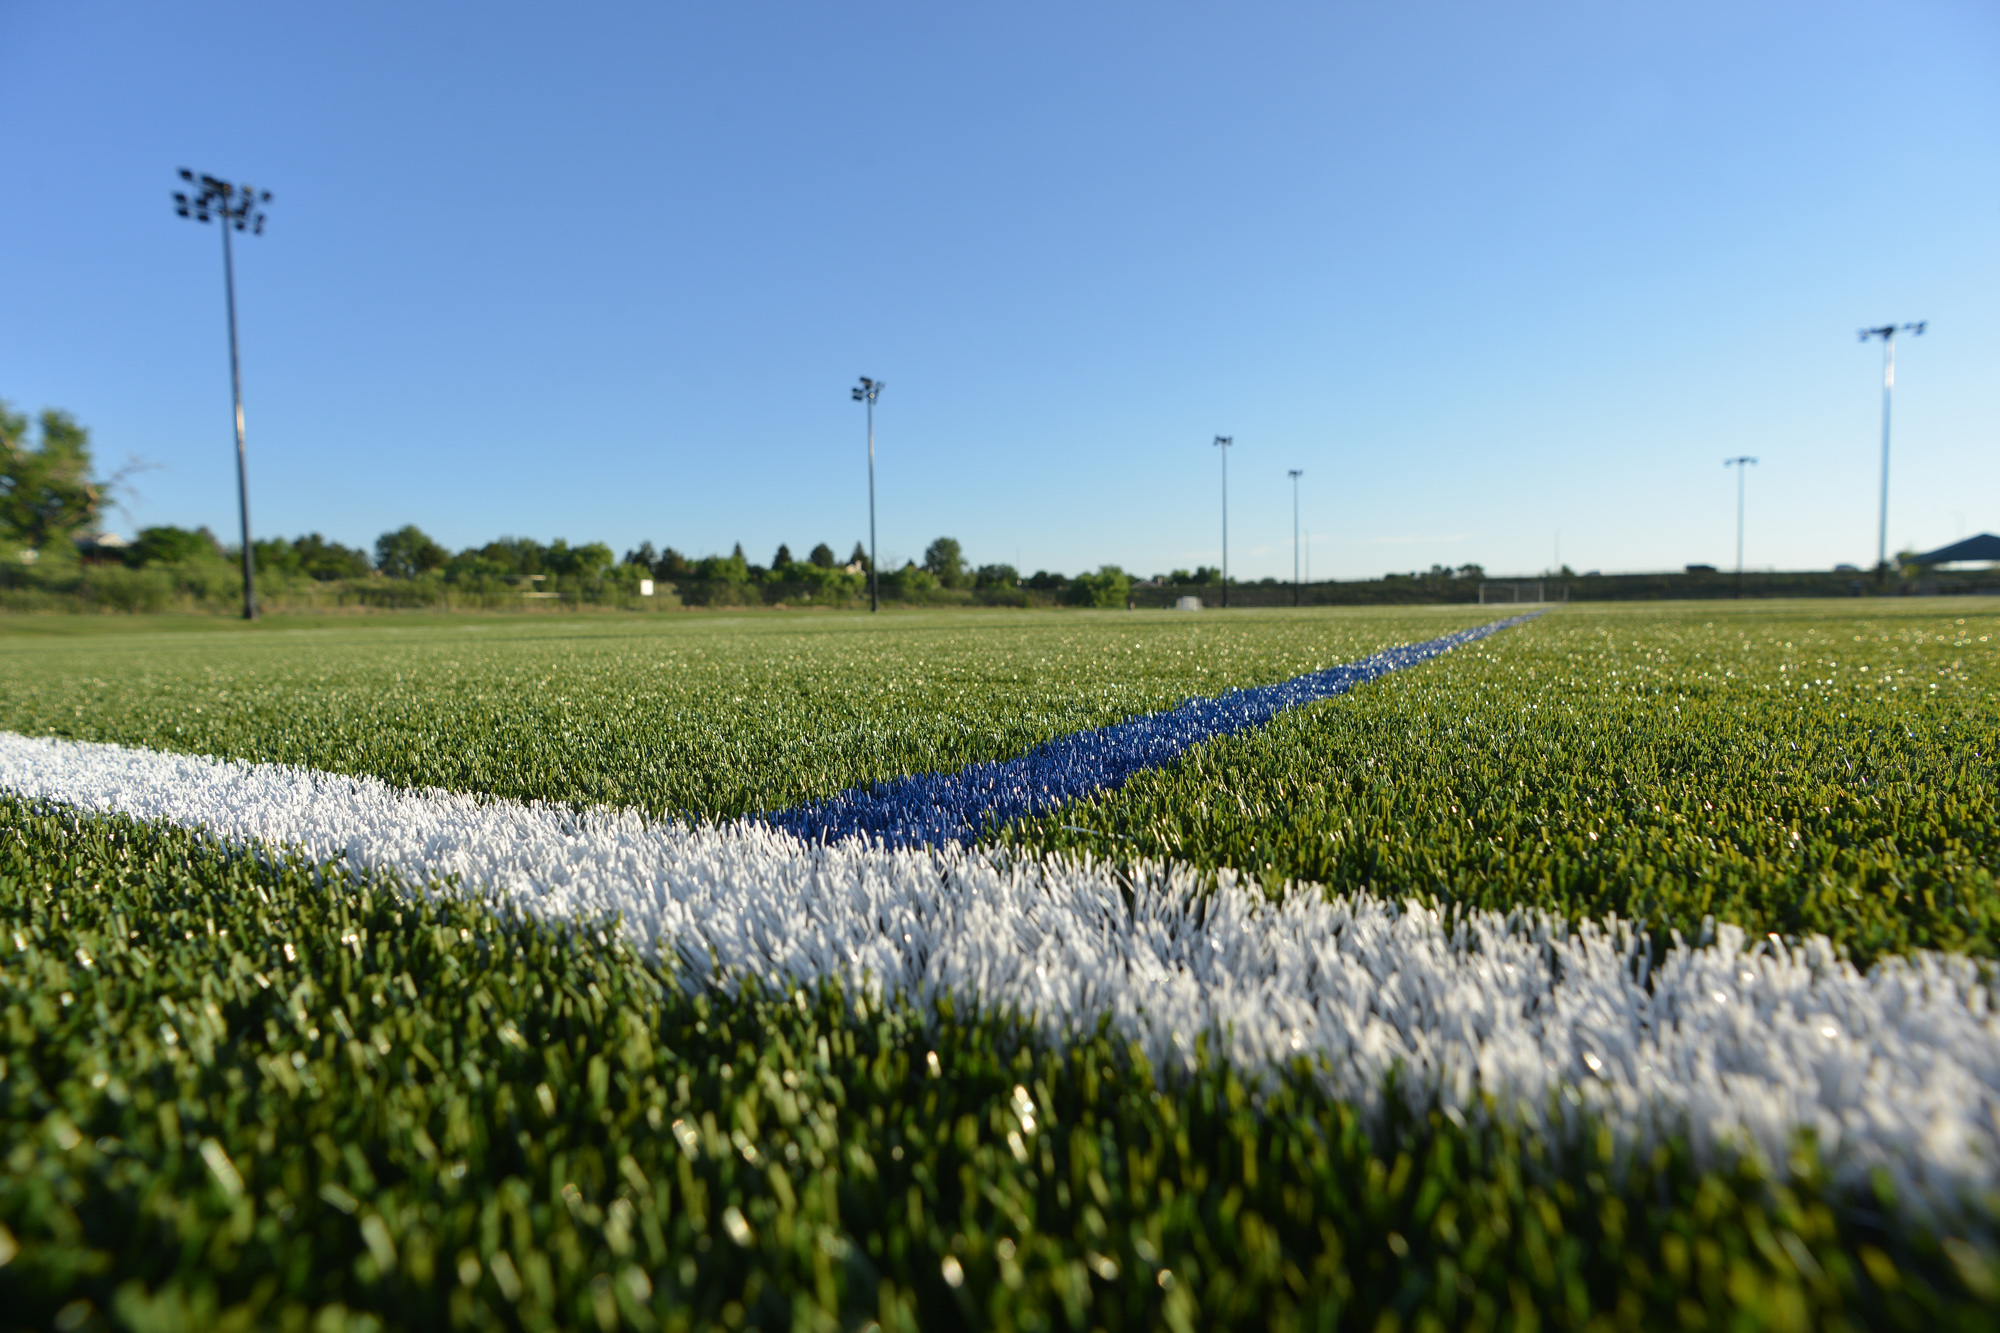 Artificial turf provides a perfectly even playing surface